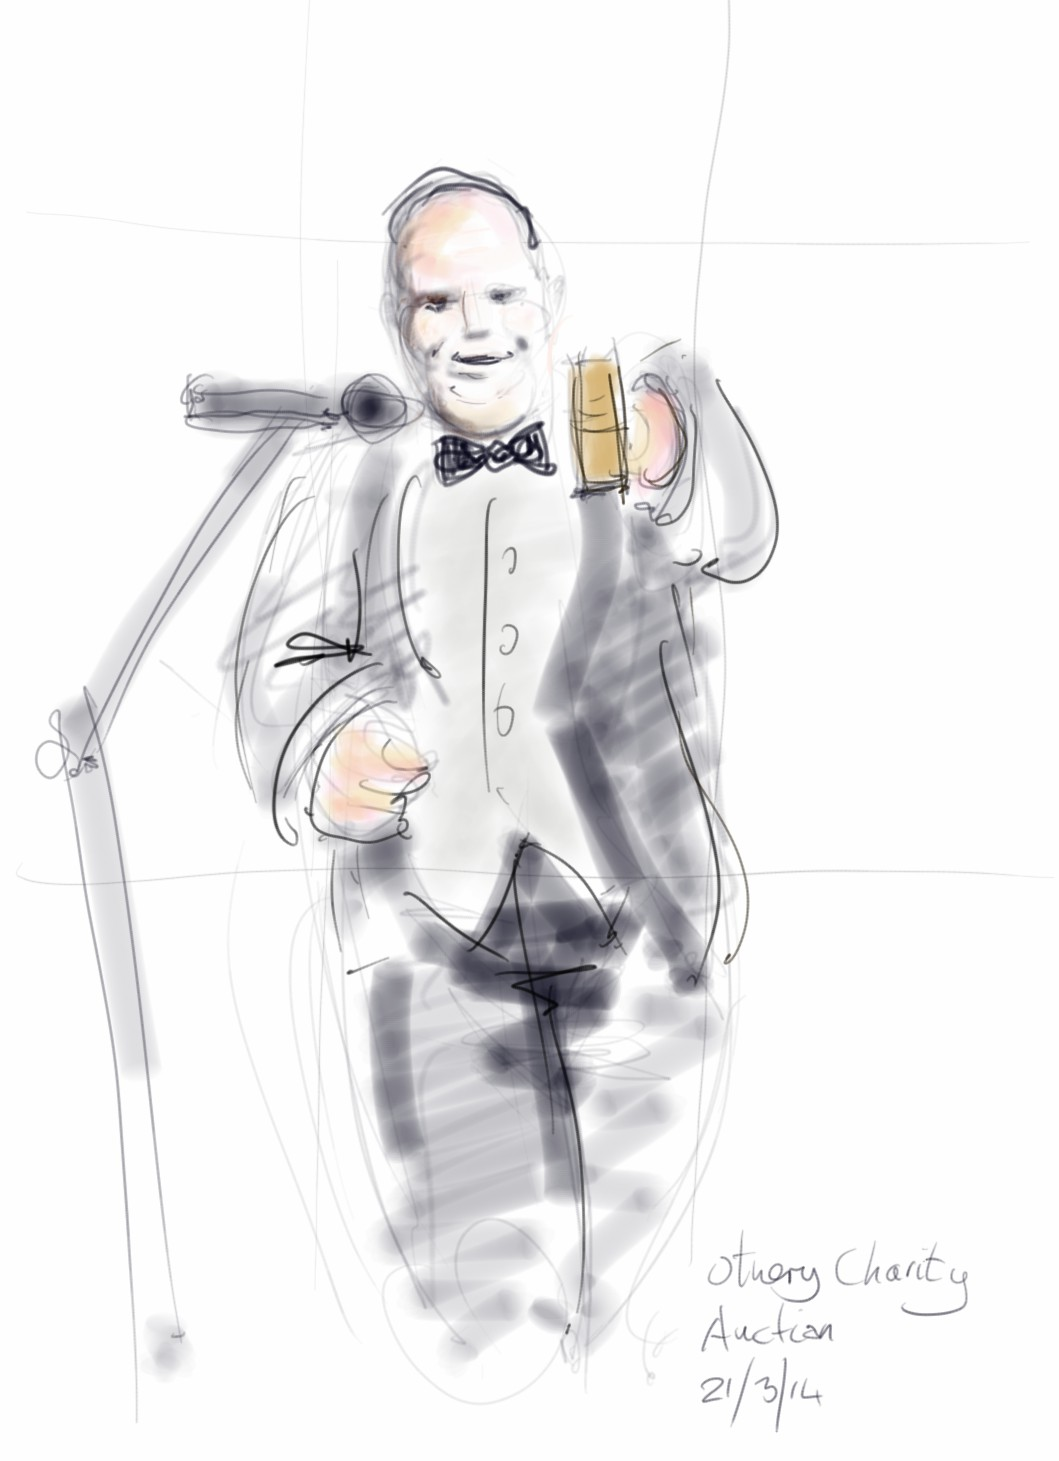 auctioneer sketch